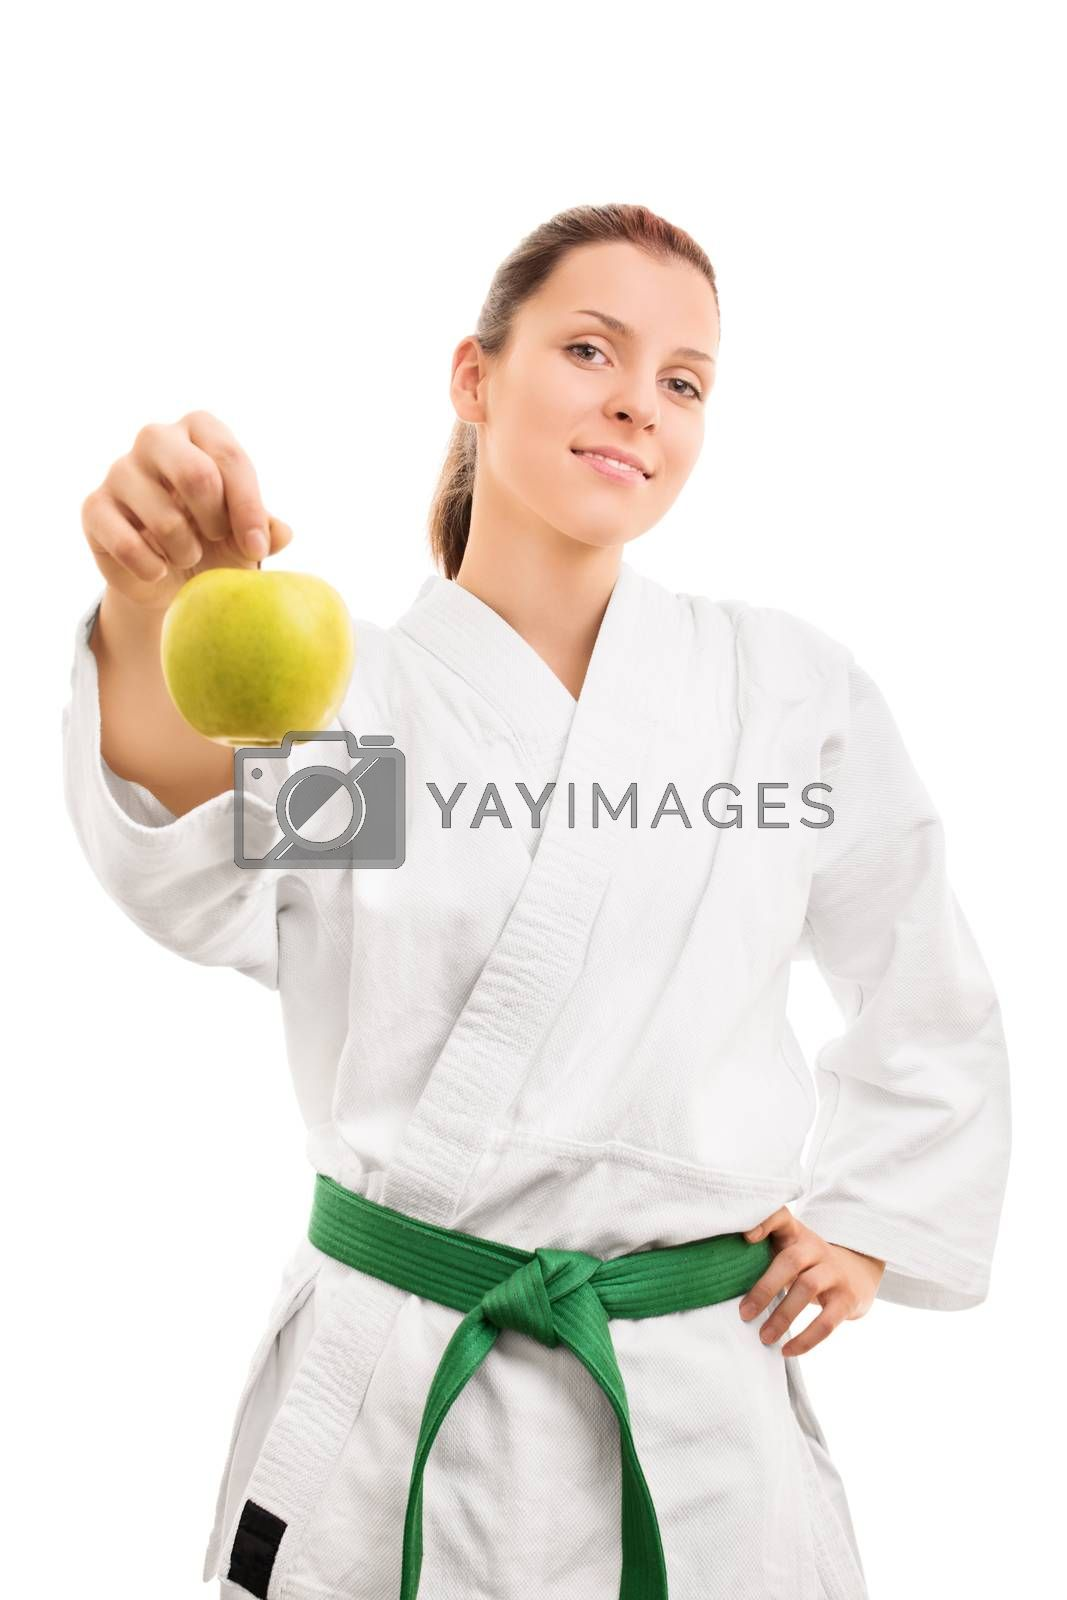 Sports and healthy eating. Beautiful smiling young girl in kimono with green belt offering an apple, isolated on white background.